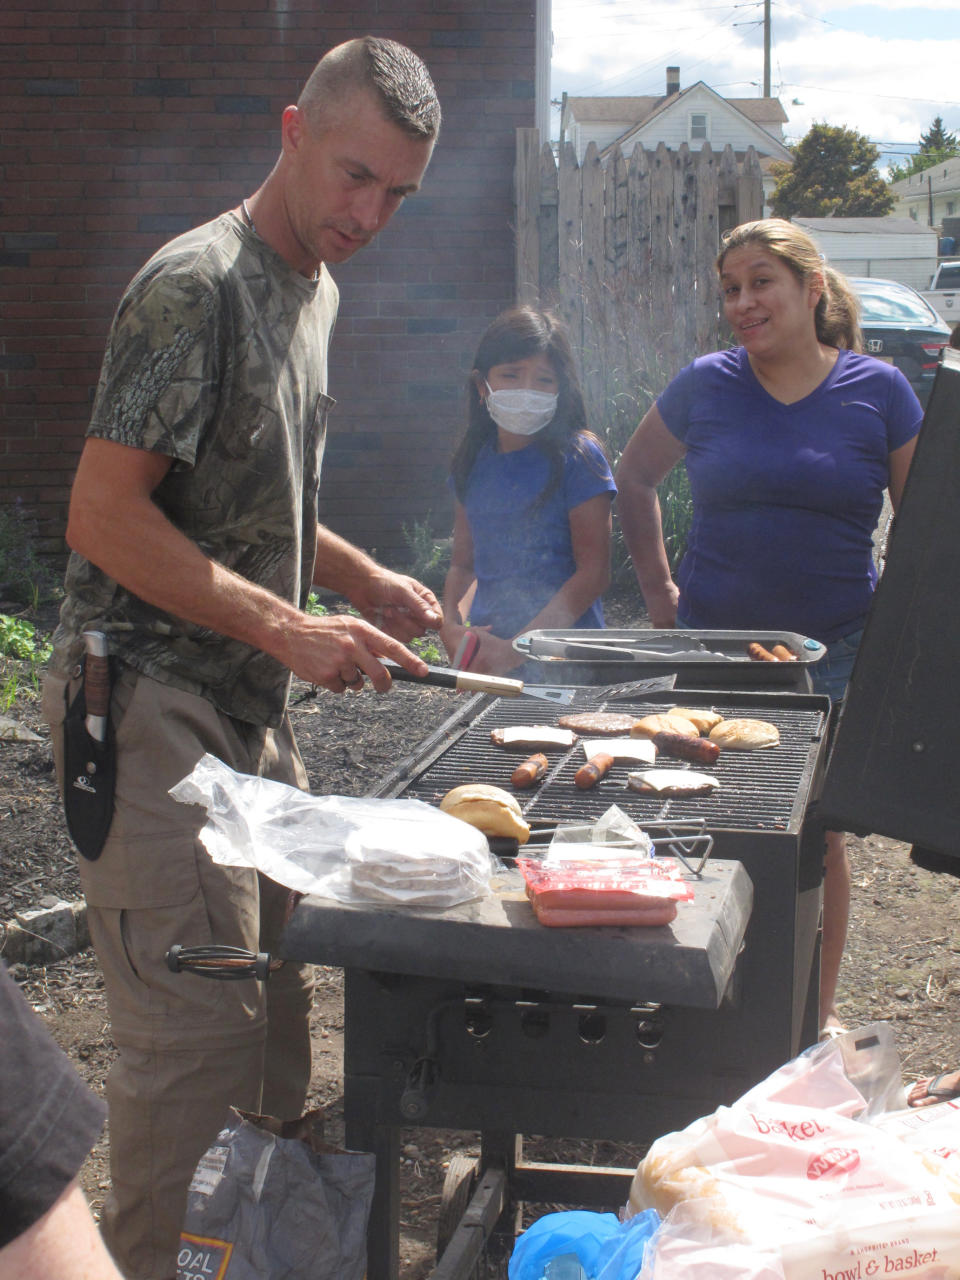 A volunteer cooks hamburgers and hot dogs for storm evacuees in Manville, N.J., Friday Sept. 3, 2021. The central New Jersey town was one of the hardest hit areas as the remnants of Hurricane Ida swept through New Jersey. (AP Photo/Wayne Parry)